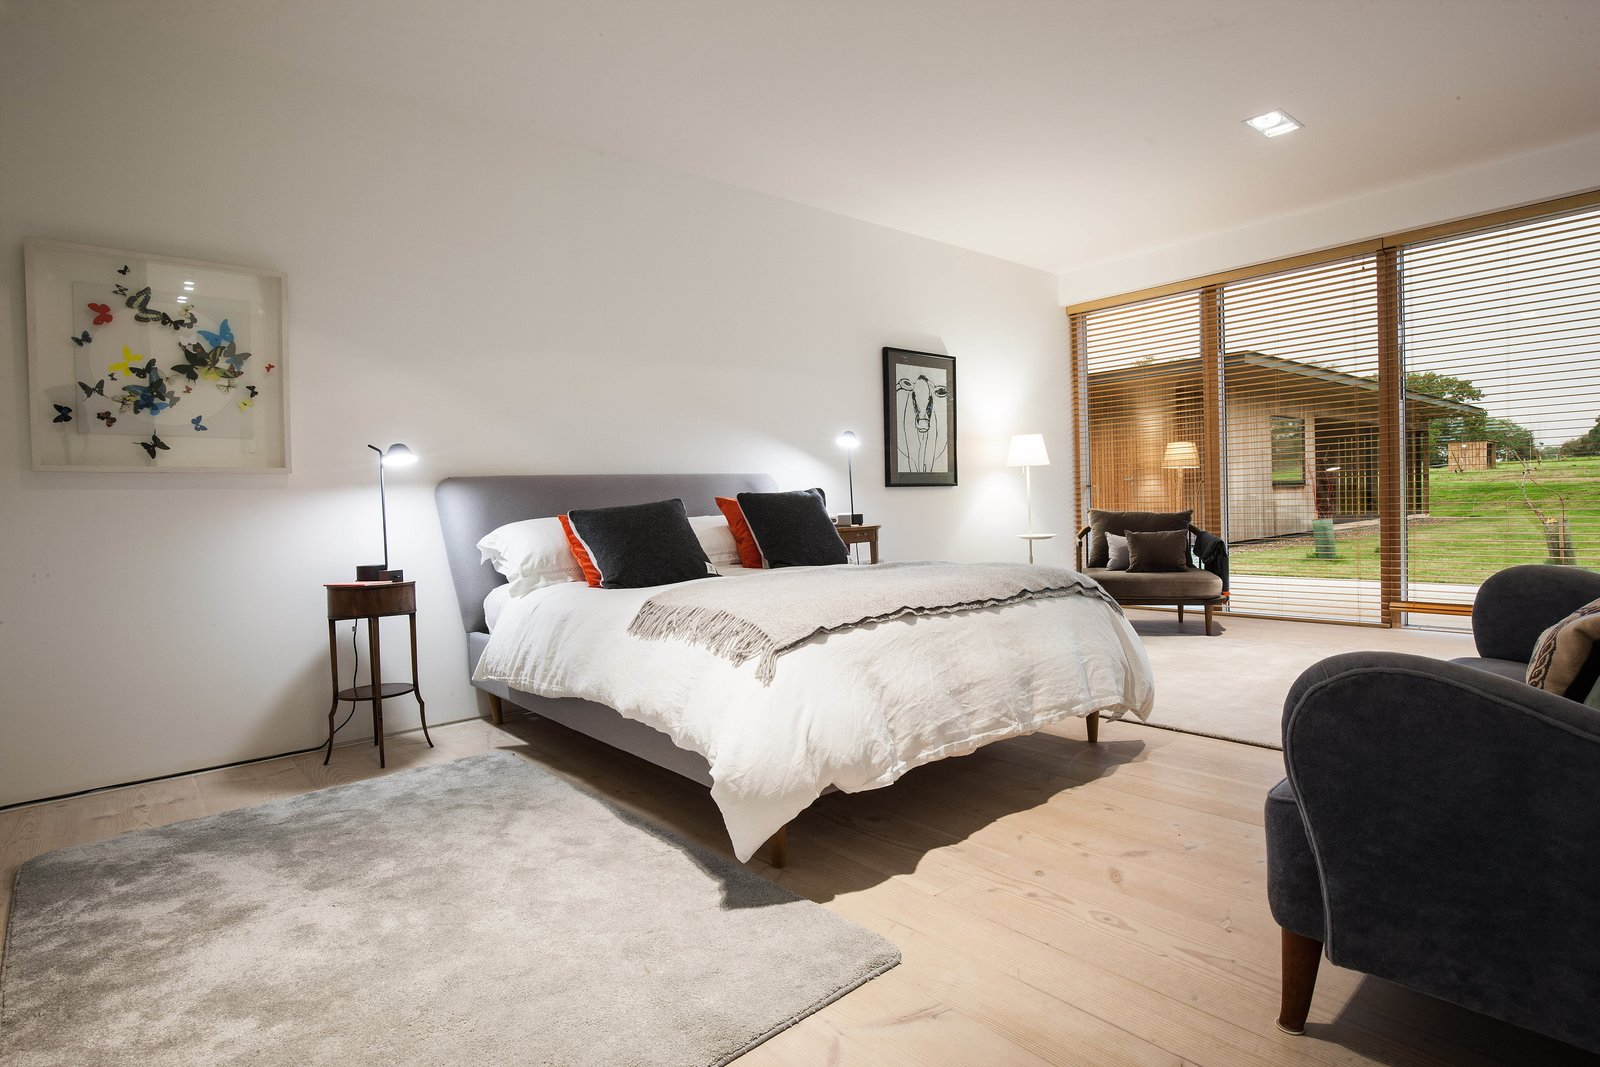 Bedroom, Chair, Night Stands, Light Hardwood, Bed, Table, Recessed, Rug, and Lamps The master bedroom offers a view of the exterior annex.  Best Bedroom Recessed Lamps Photos from A Scandinavian-Style Pavilion in England Is Listed For $2.1M